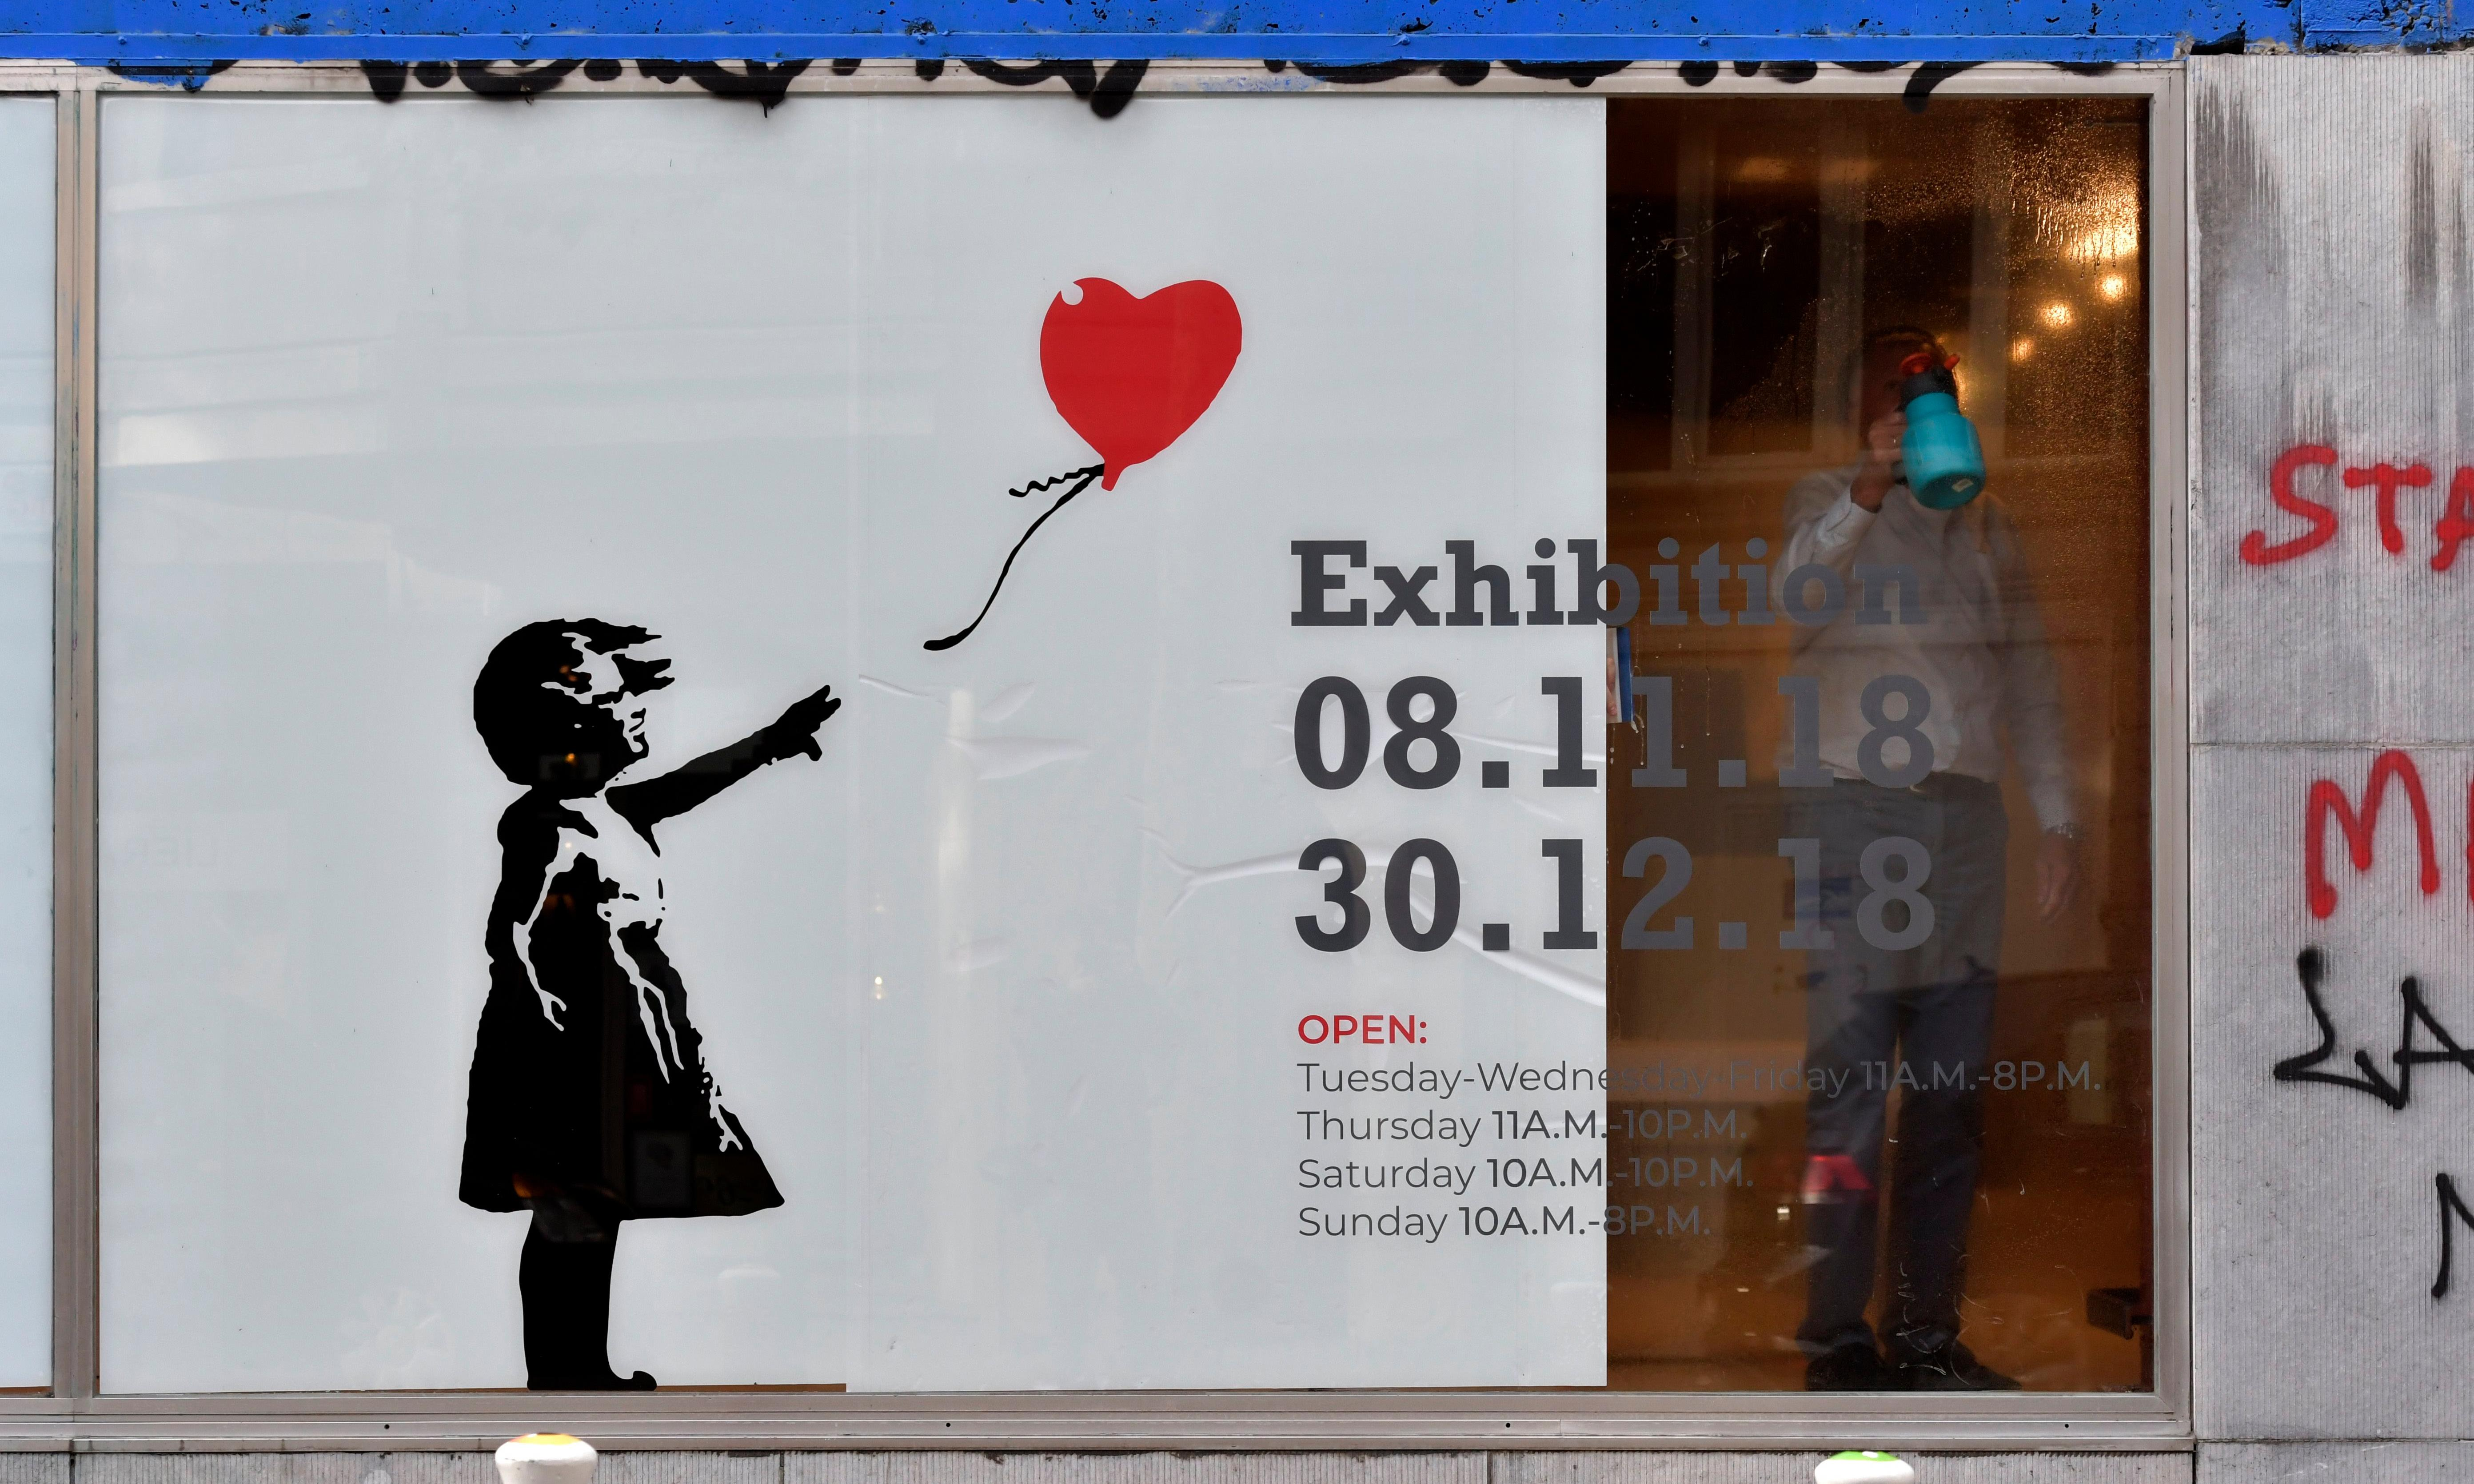 Banksy works worth £12m impounded in Belgium after legal row